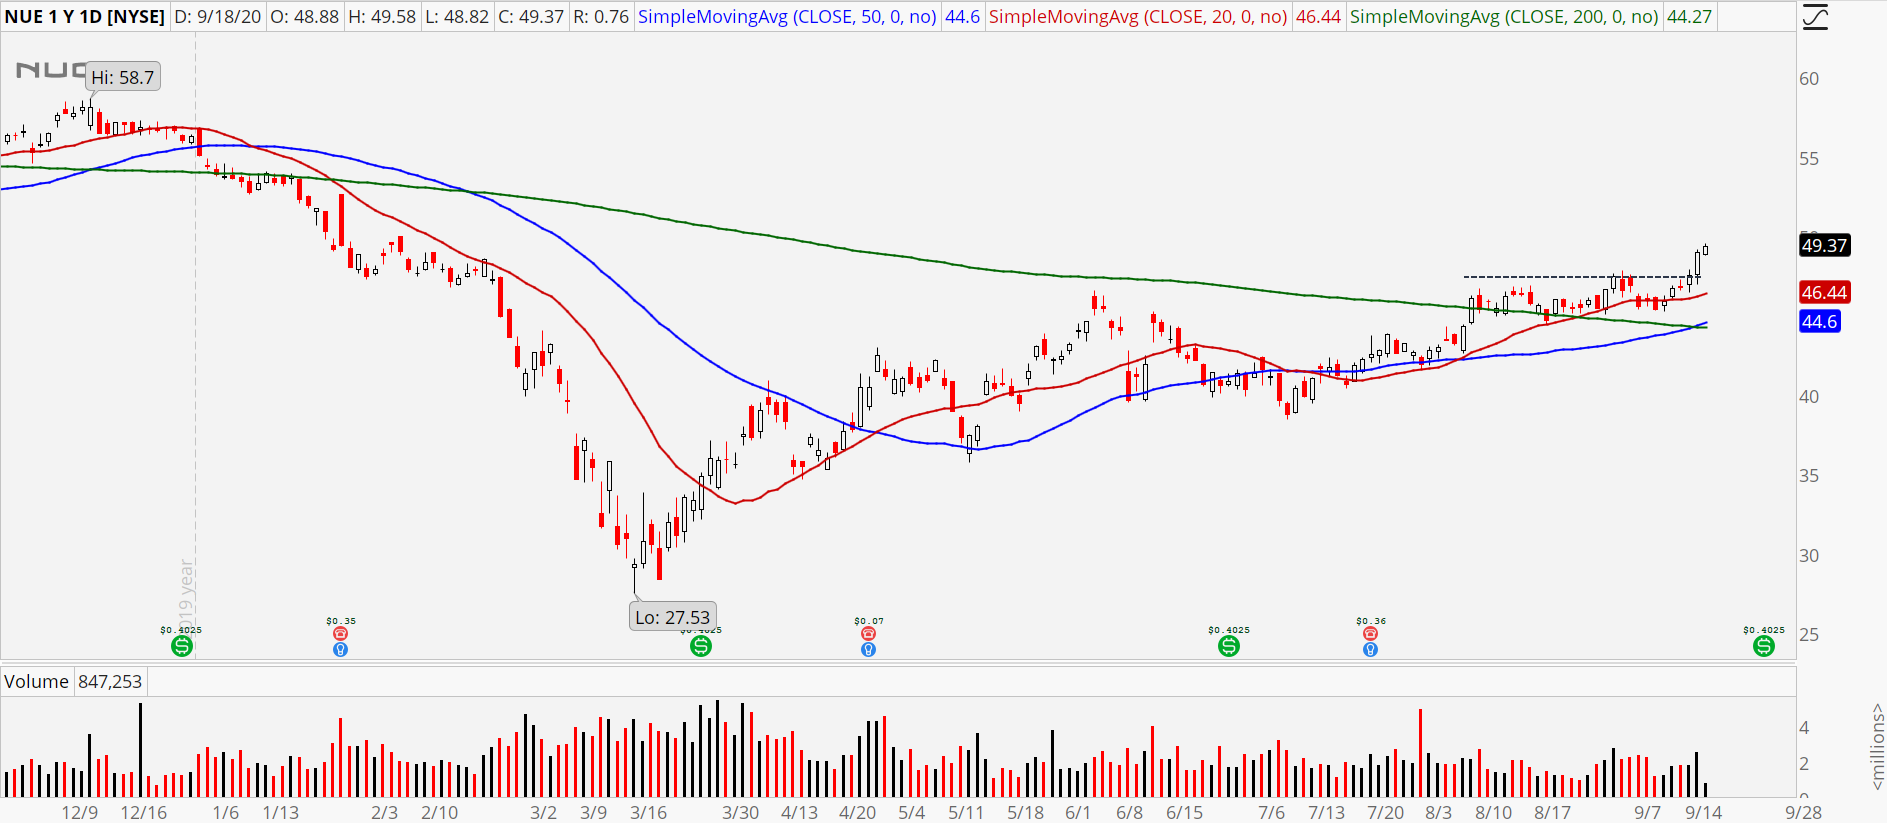 Nucor (NUE) stock chart showing bull breakout